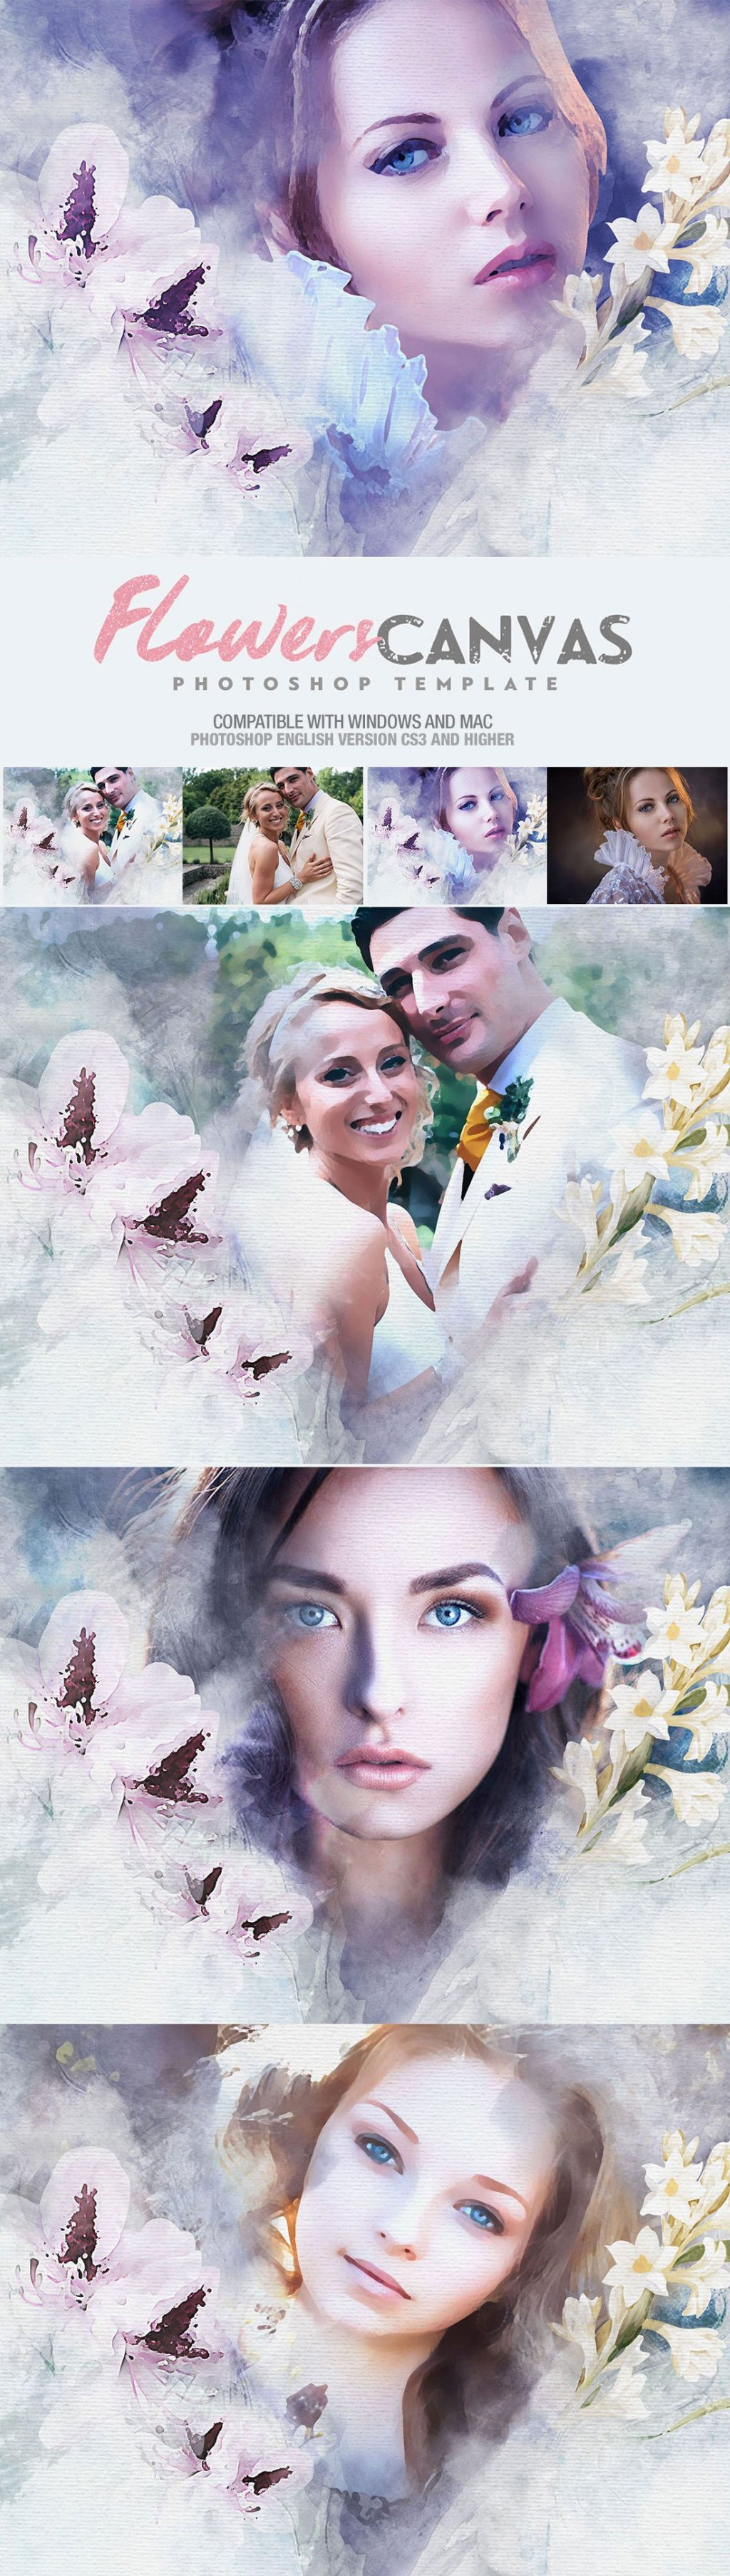 Photoshop Actions & Templates: Artistic Photo FX Bundle - flowers canvas photo template design by amorjesu